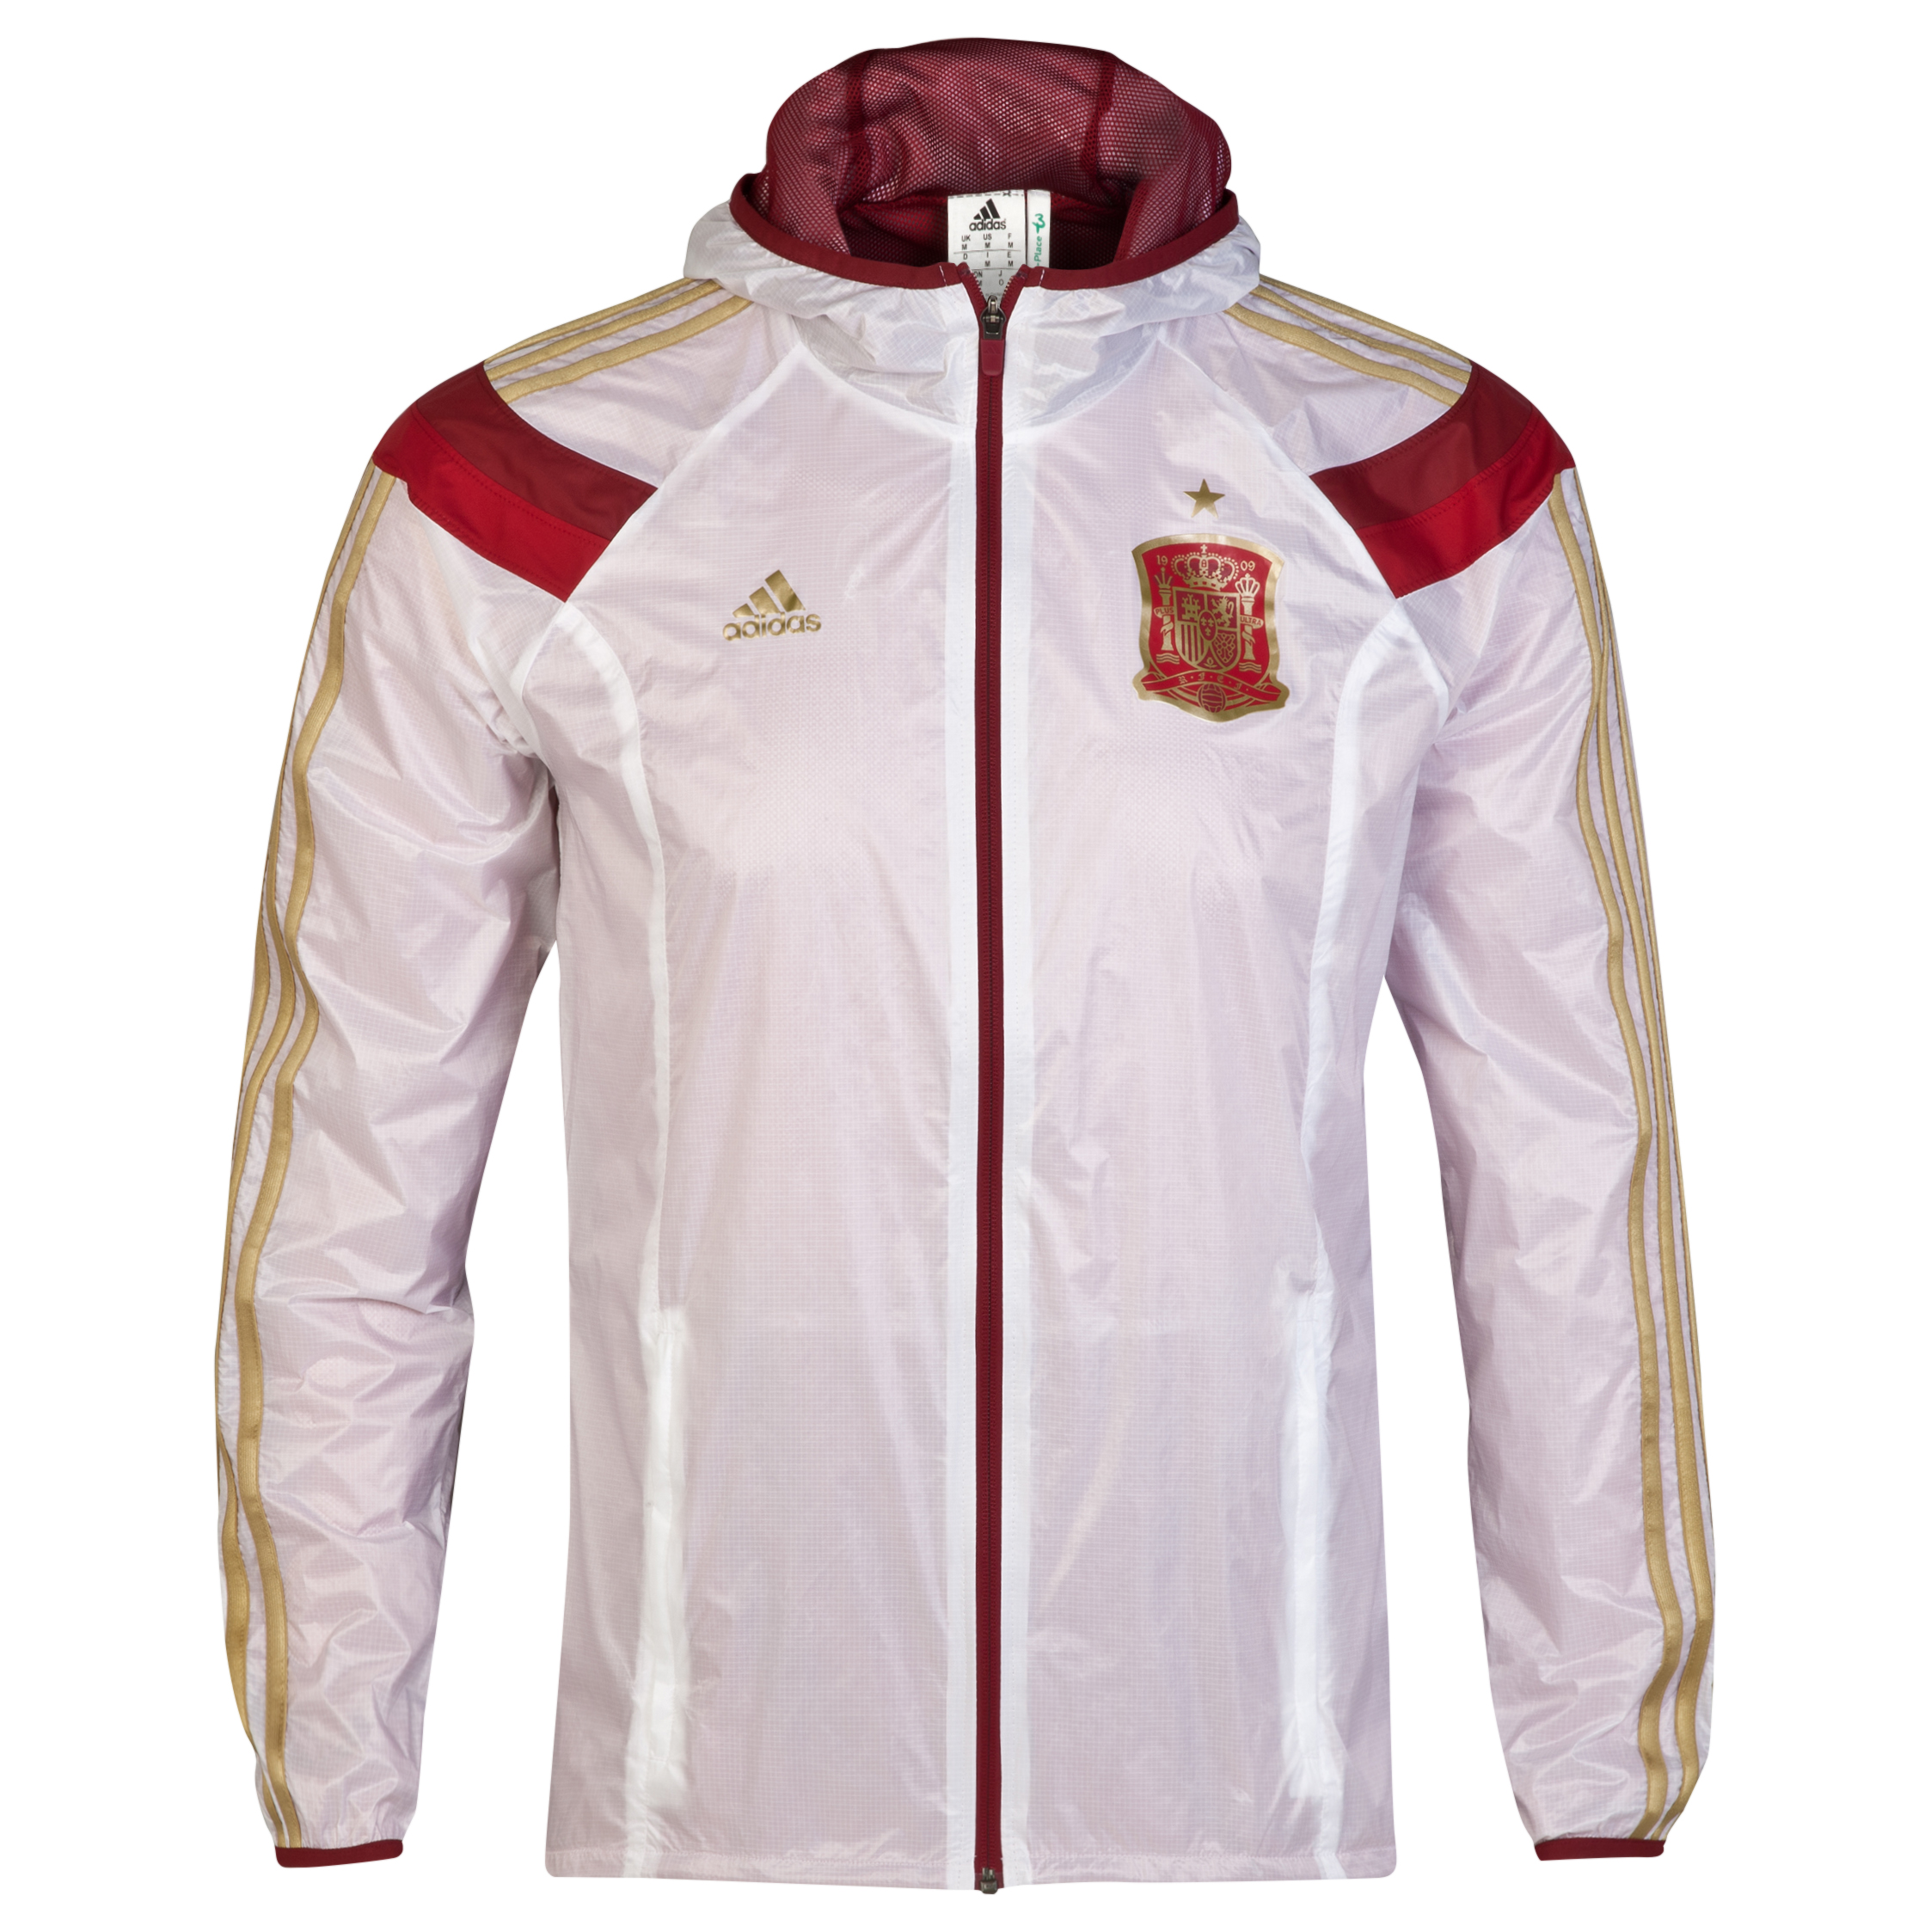 Spain Anthem Jacket - White/Red White